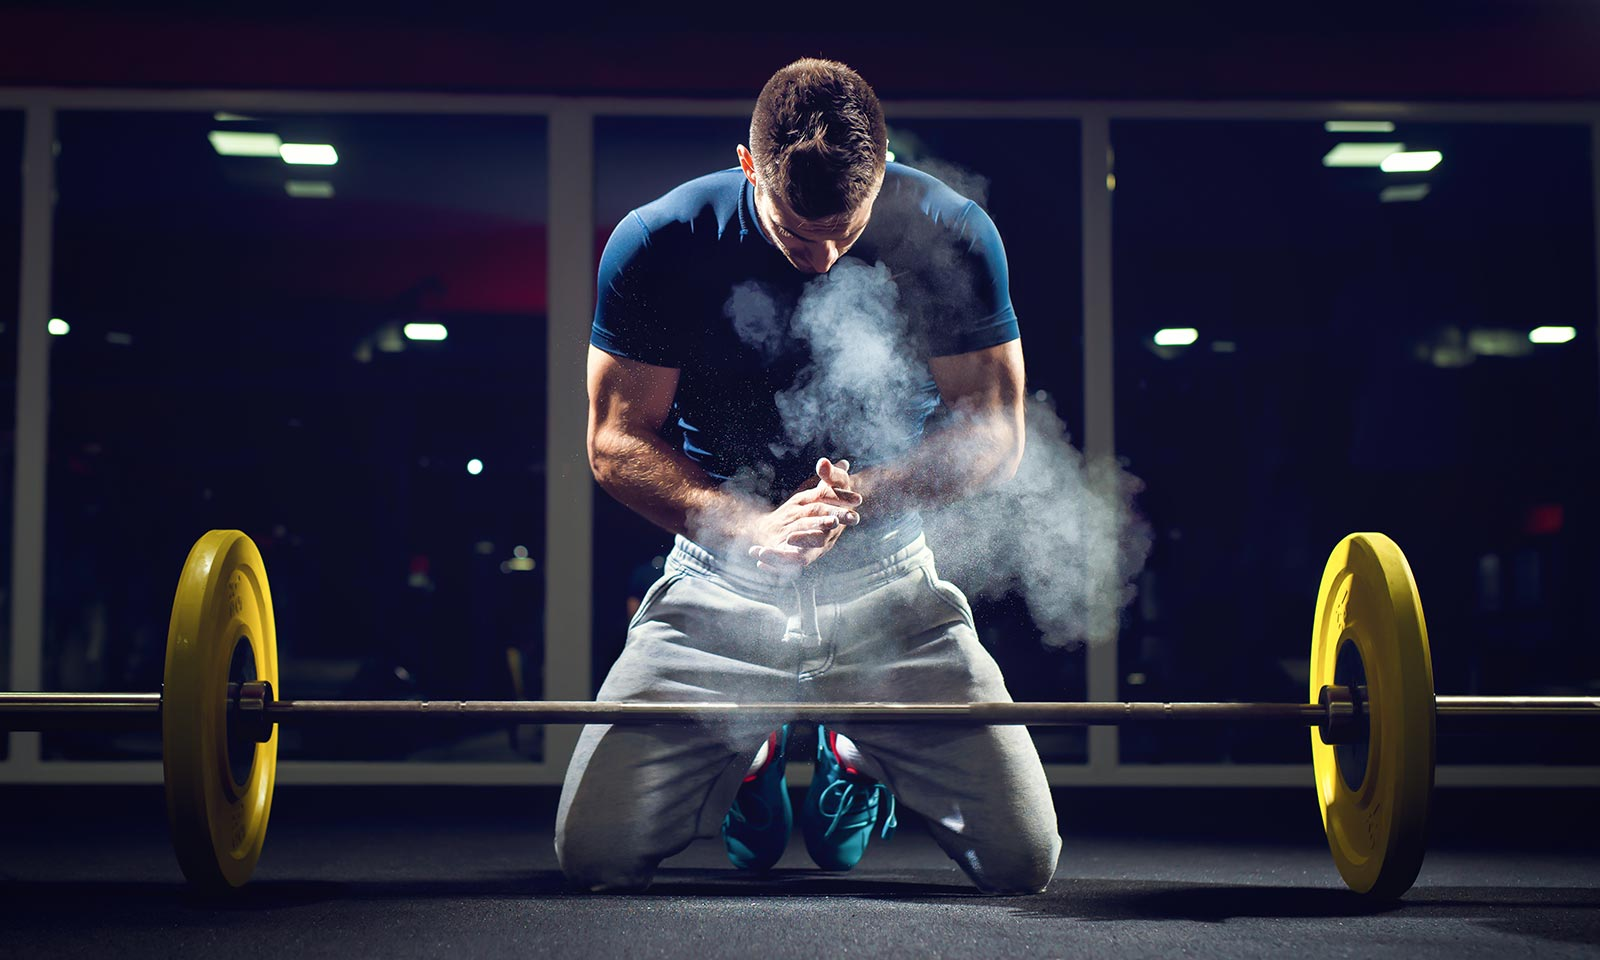 drop-sets-the-ultimate-gym-rats-guide